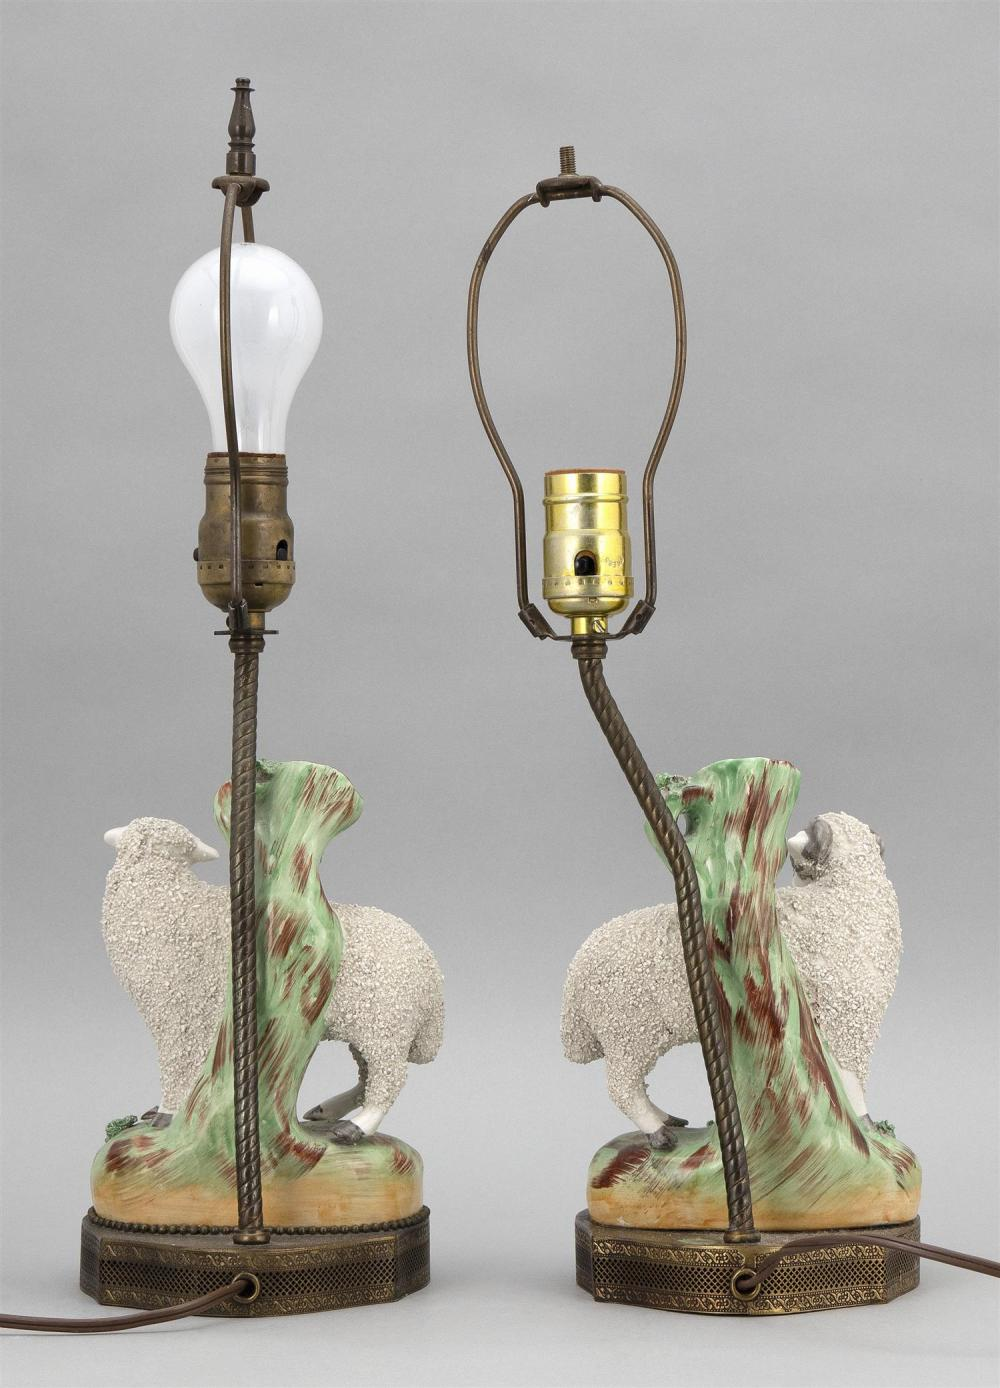 PAIR OF STAFFORDSHIRE SHEEP VASES A ewe and a ram, with tree stump behind. Mounted as lamps. Total heights 17.5